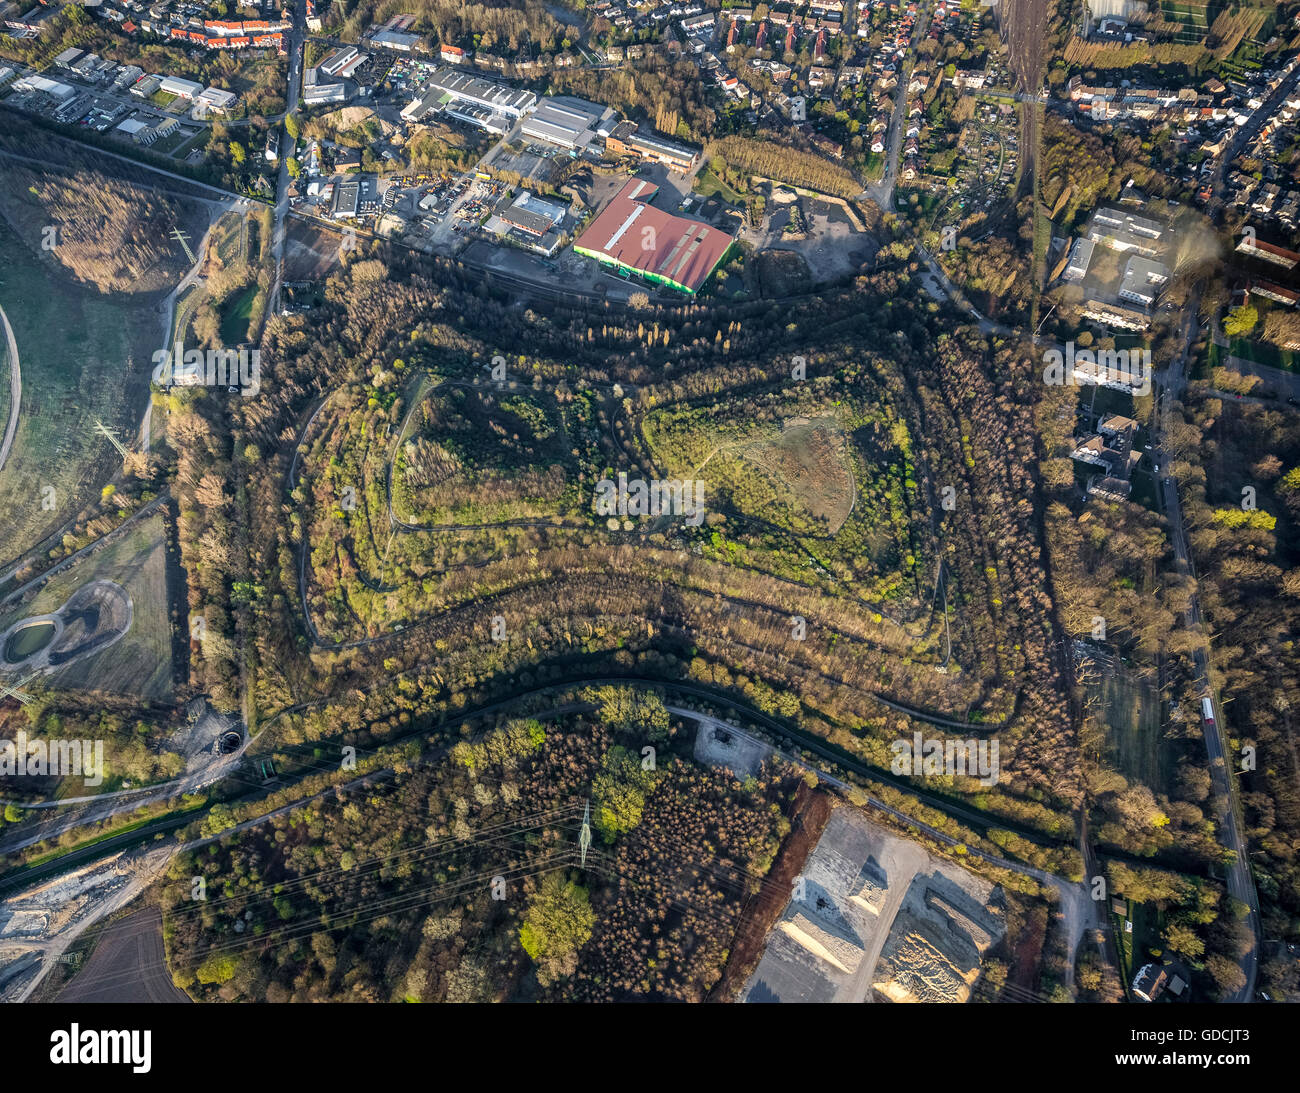 Aerial view, dump in form of spectacle glases, Brauck, Gladbeck, Ruhr area, North Rhine-westphalia, Germany, Europe, - Stock Image